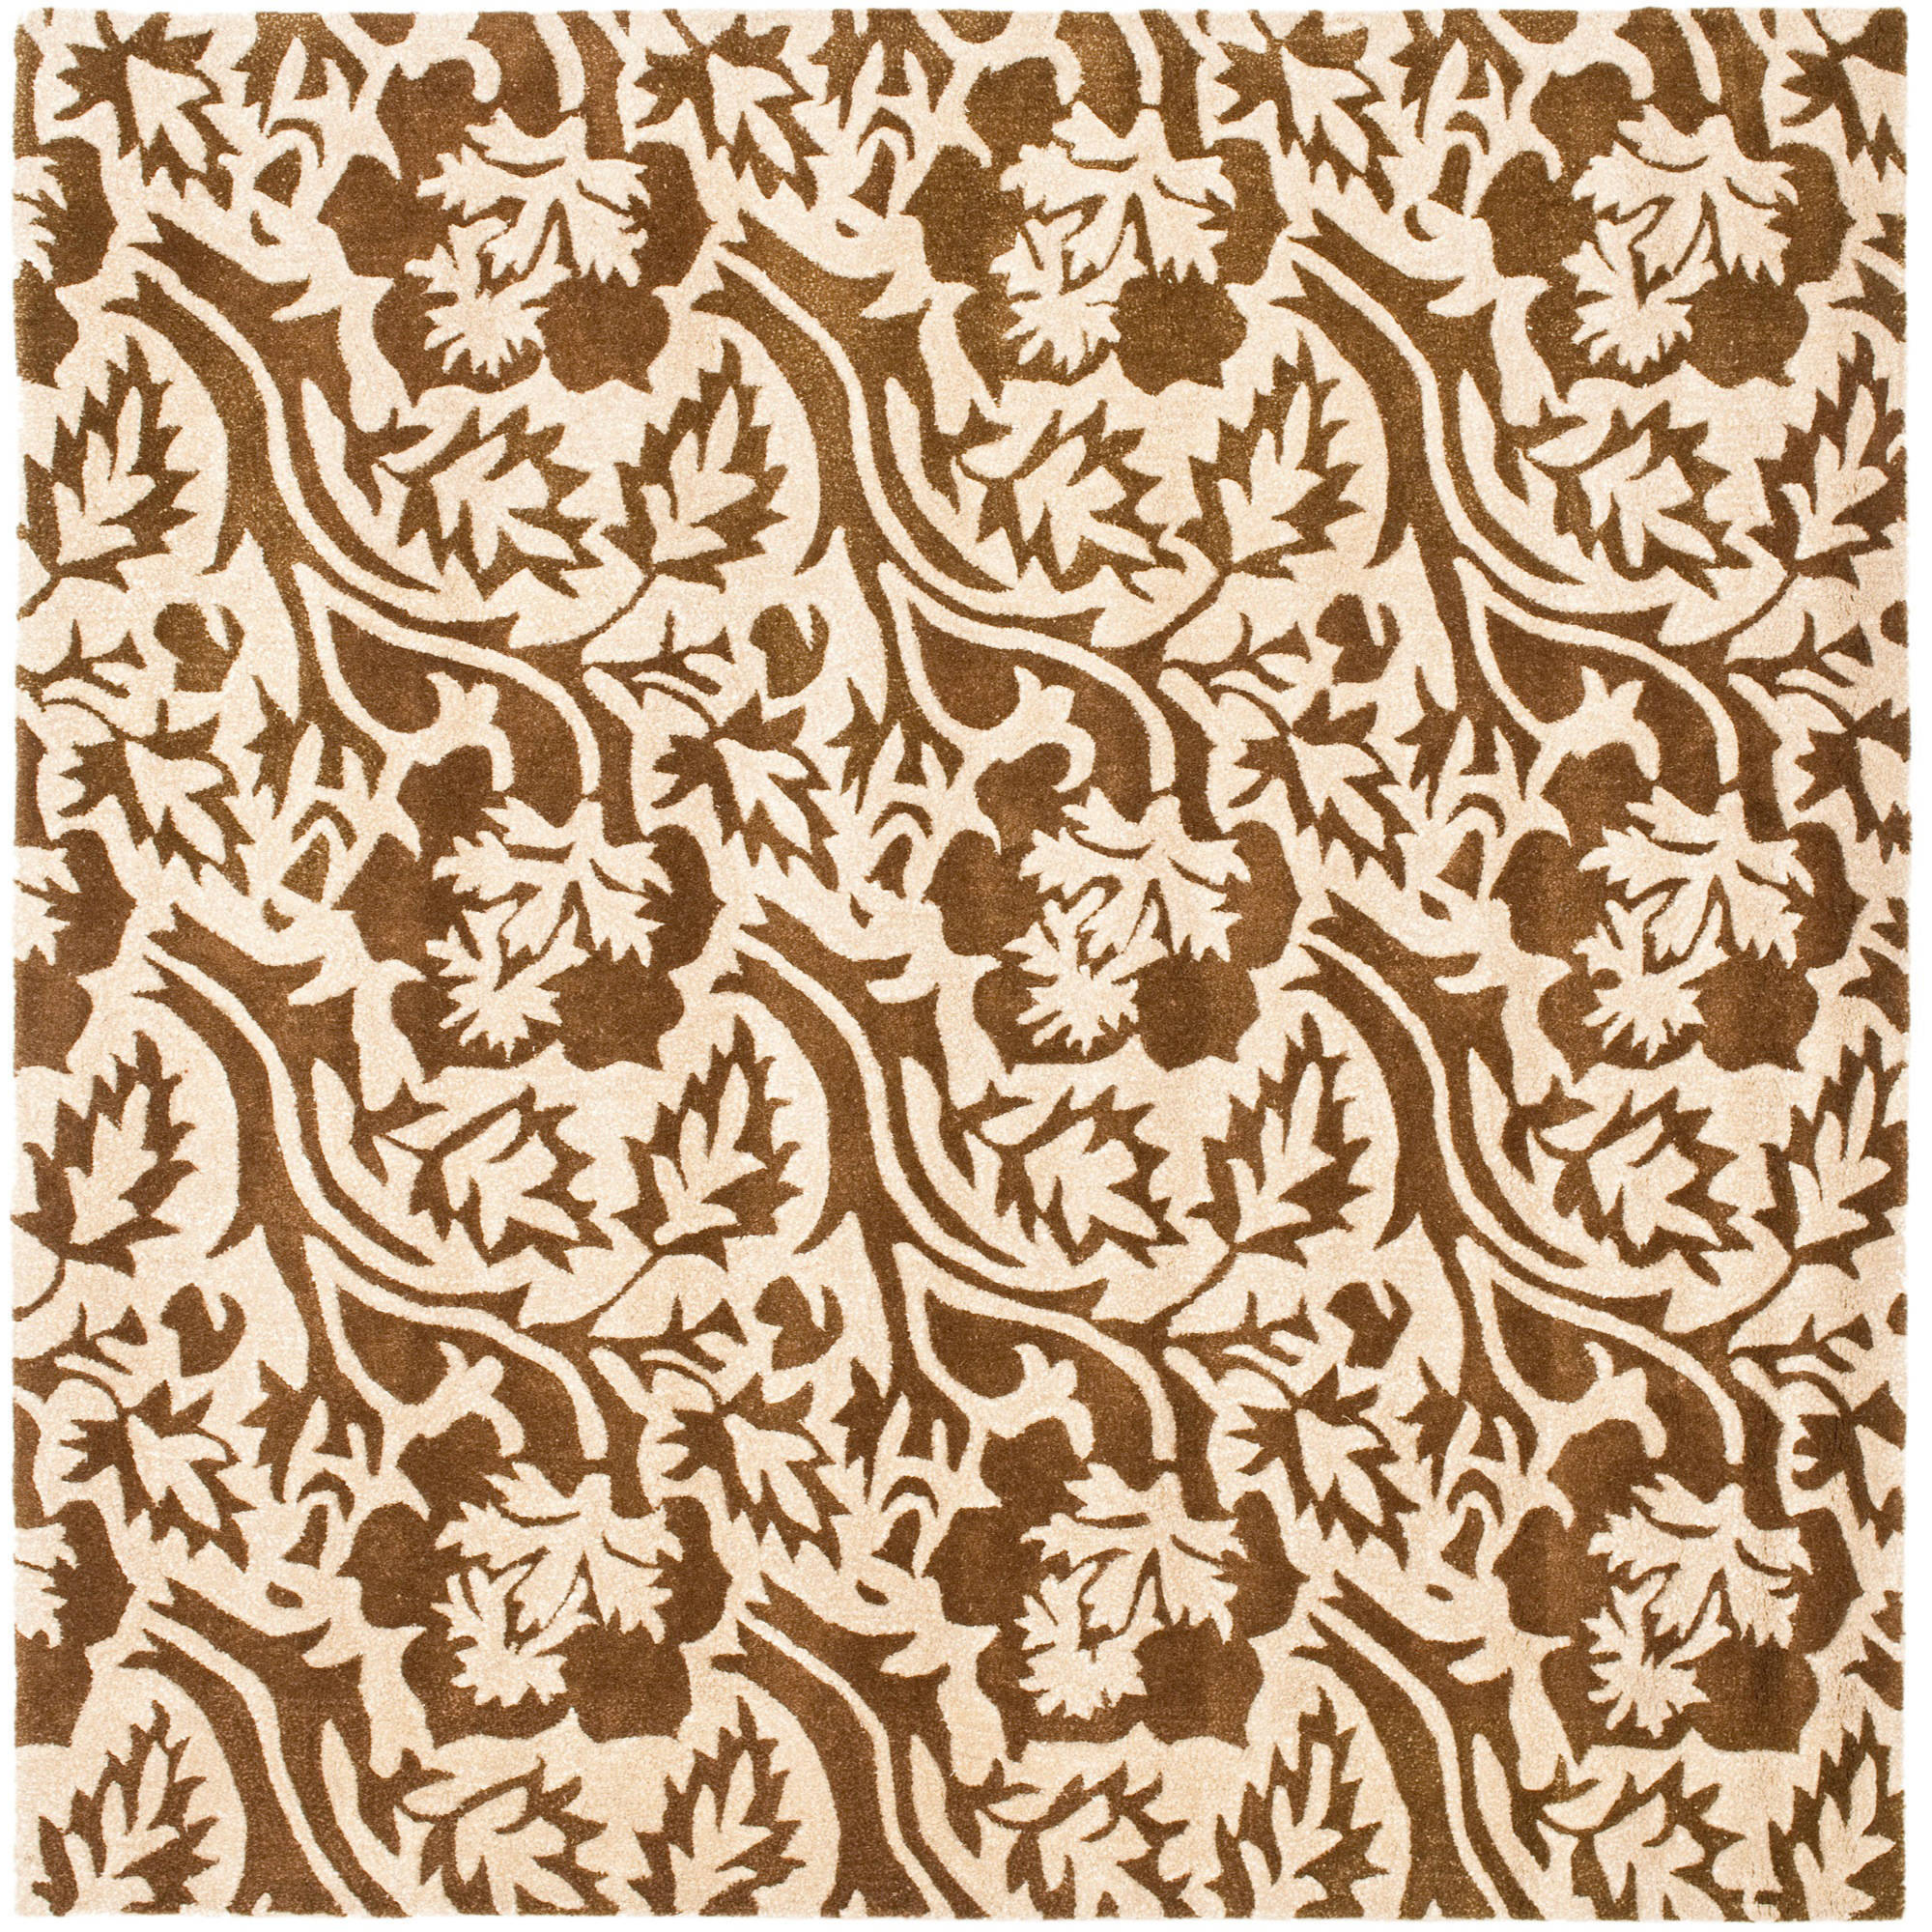 Safavieh Soho Autumn Wool Square Rug, Brown/Ivory, 6'